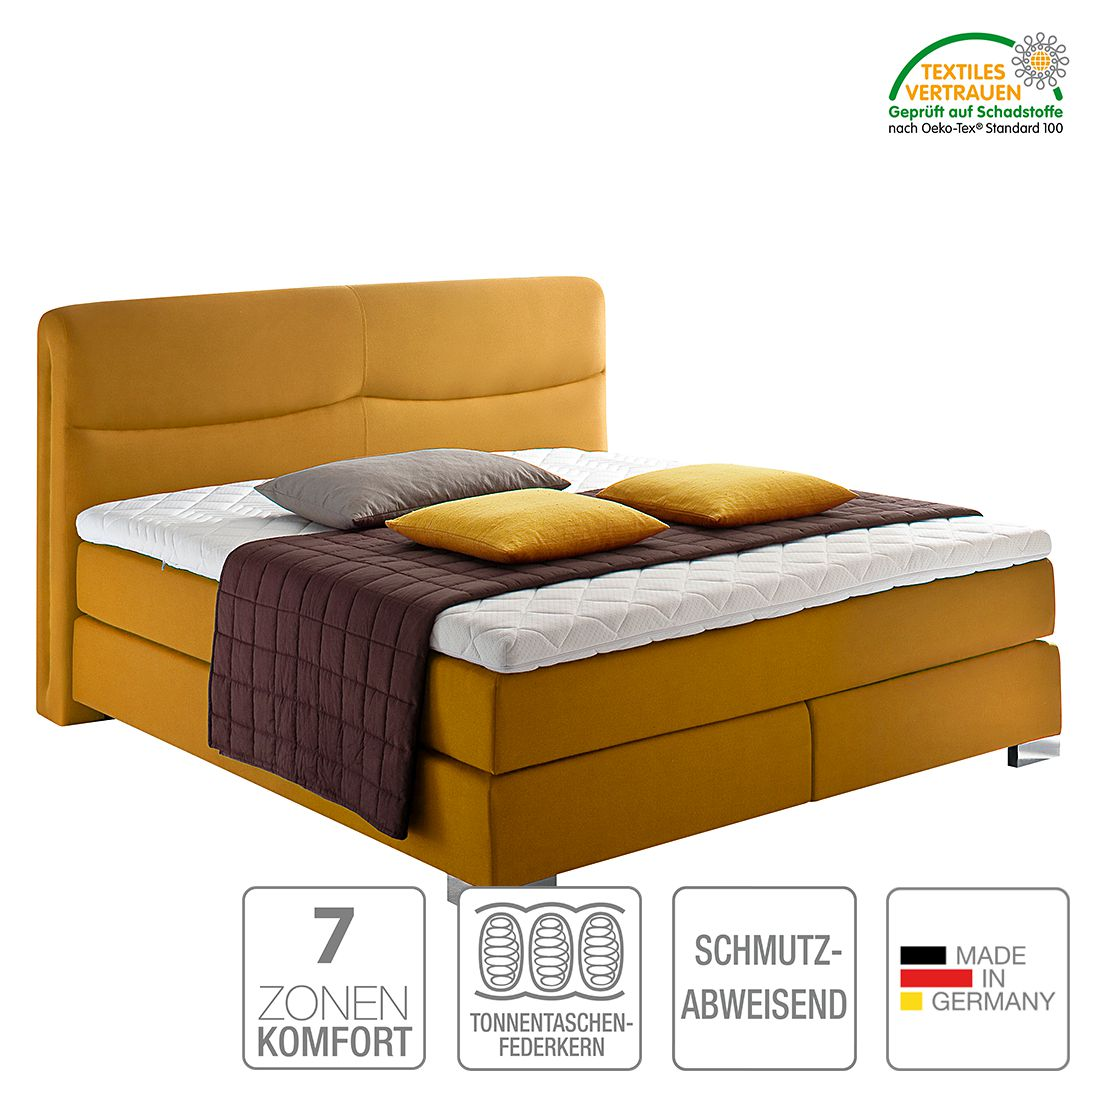 boxspringbett scala webstoff h3 ab 80 kg kaltschaumtopper bonellfederkern multi. Black Bedroom Furniture Sets. Home Design Ideas